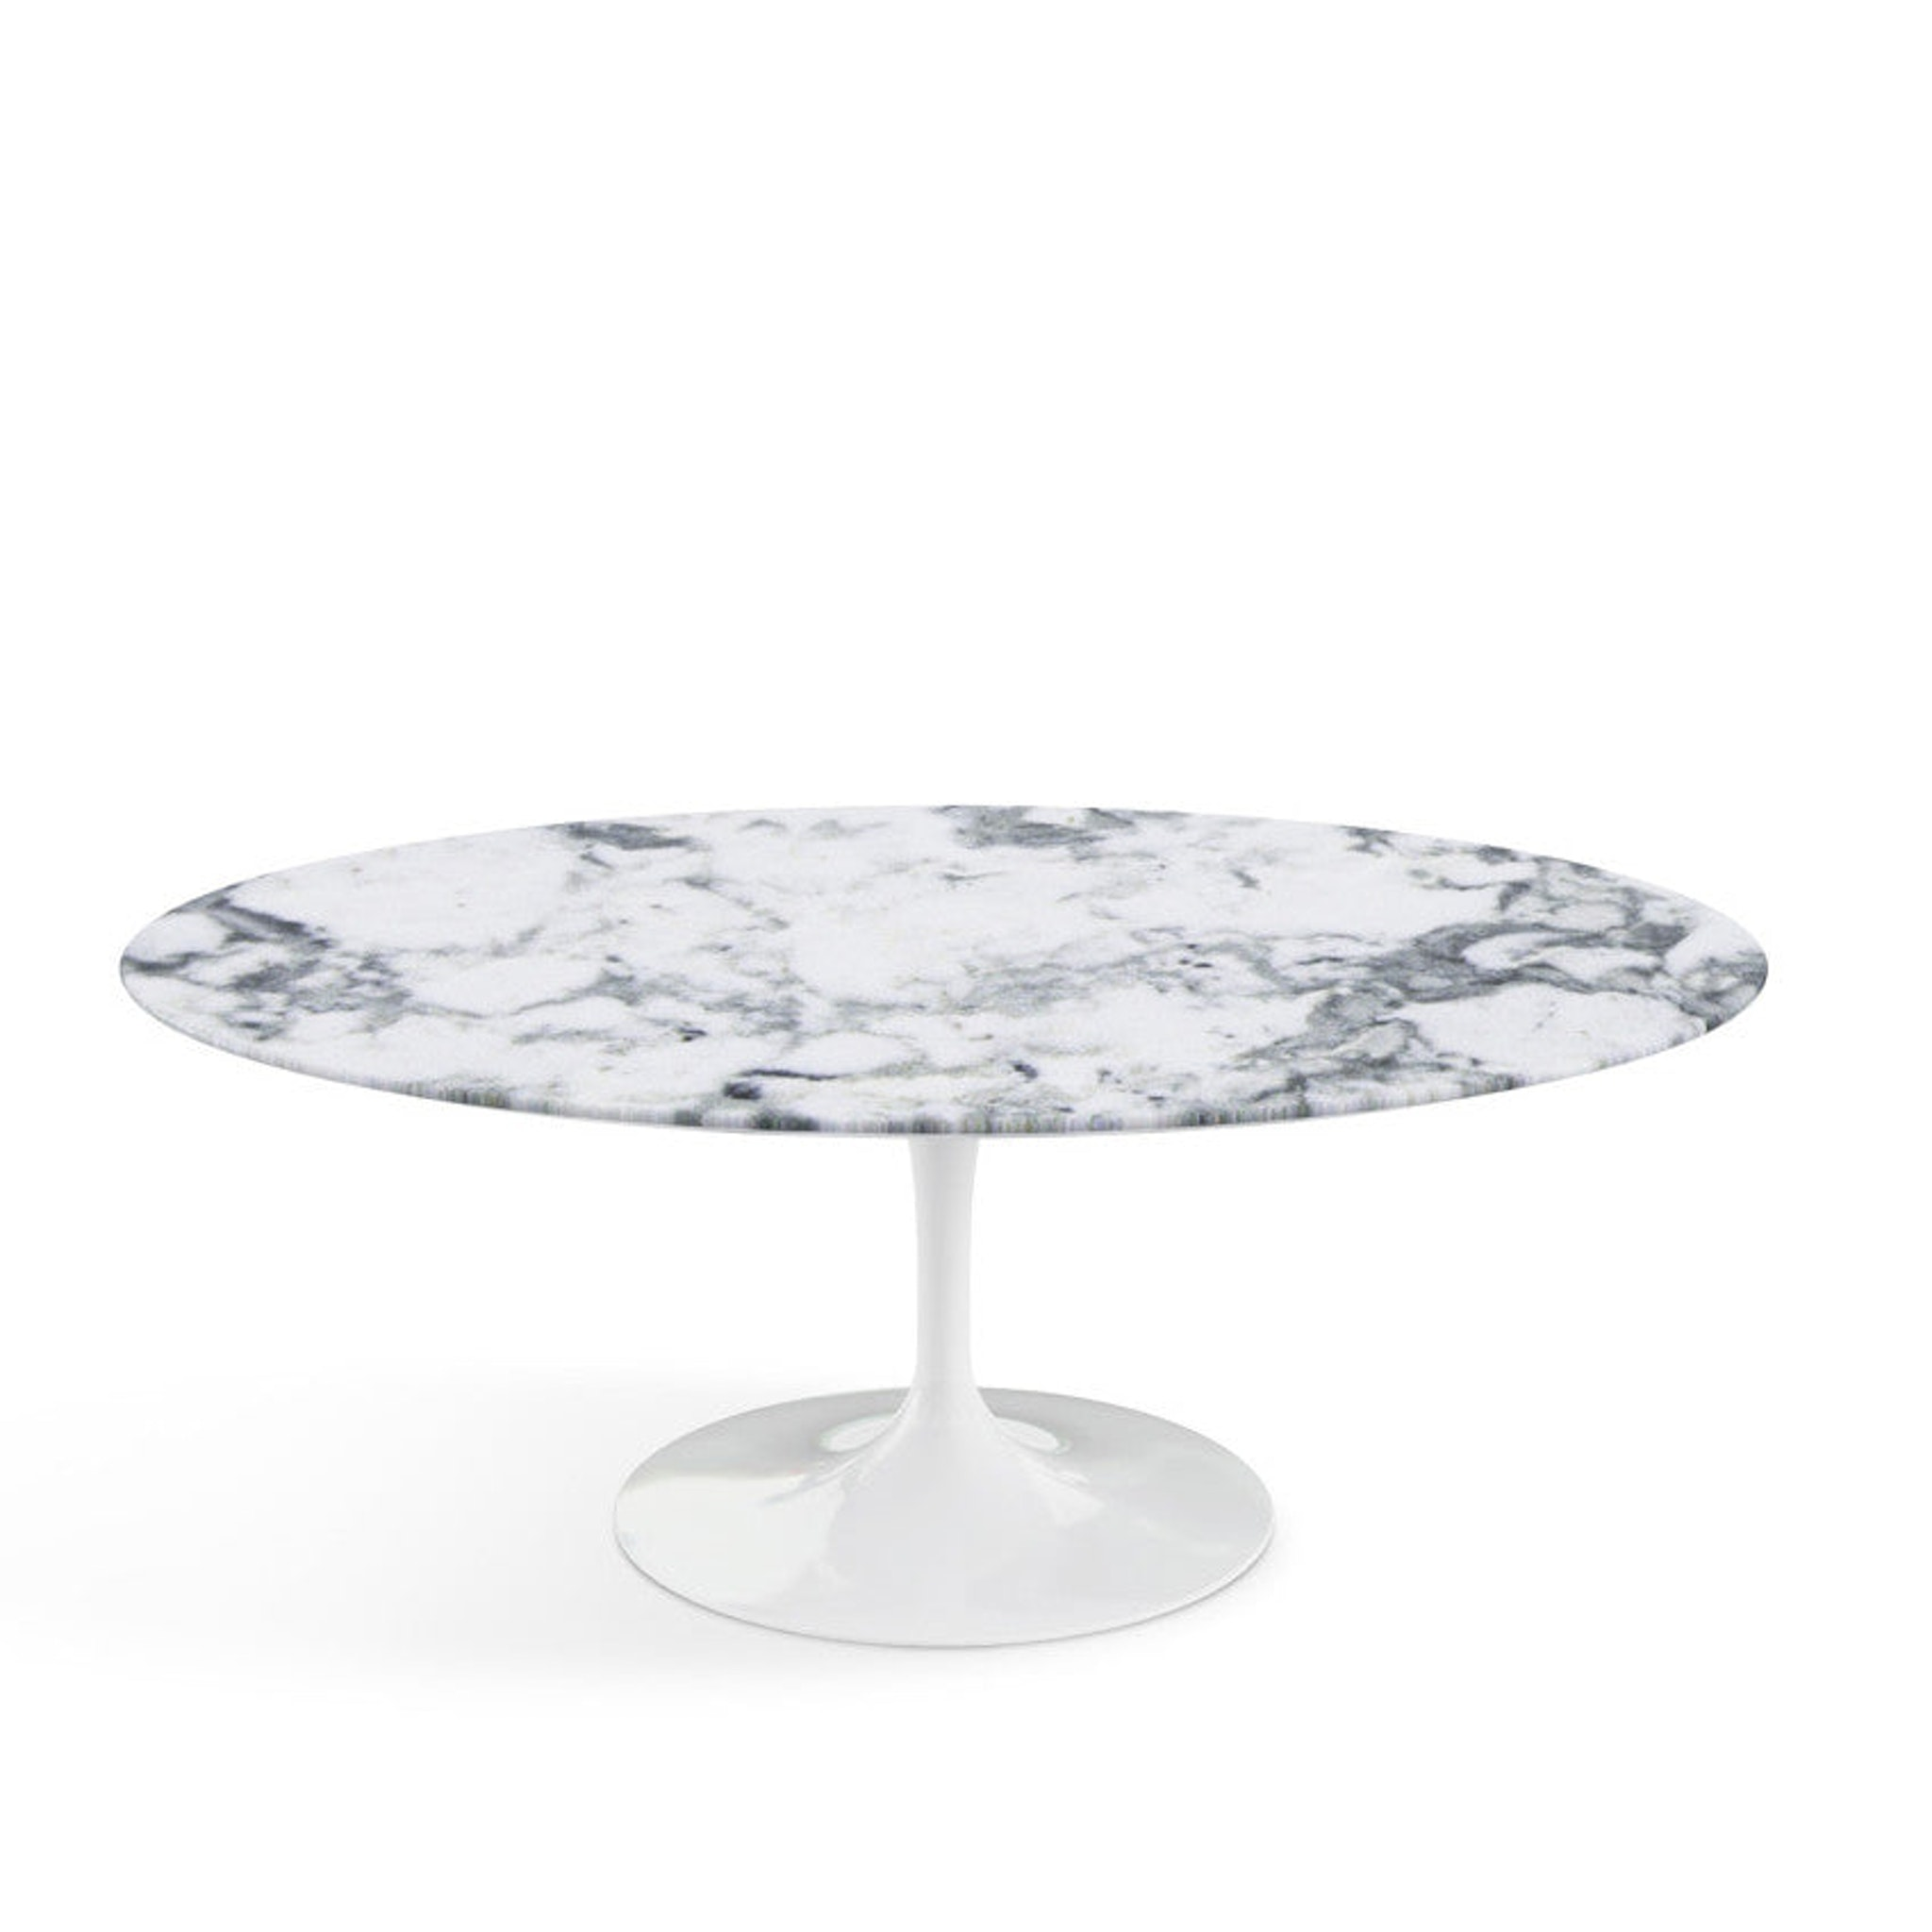 Tulip Coffee Table Round by Knoll